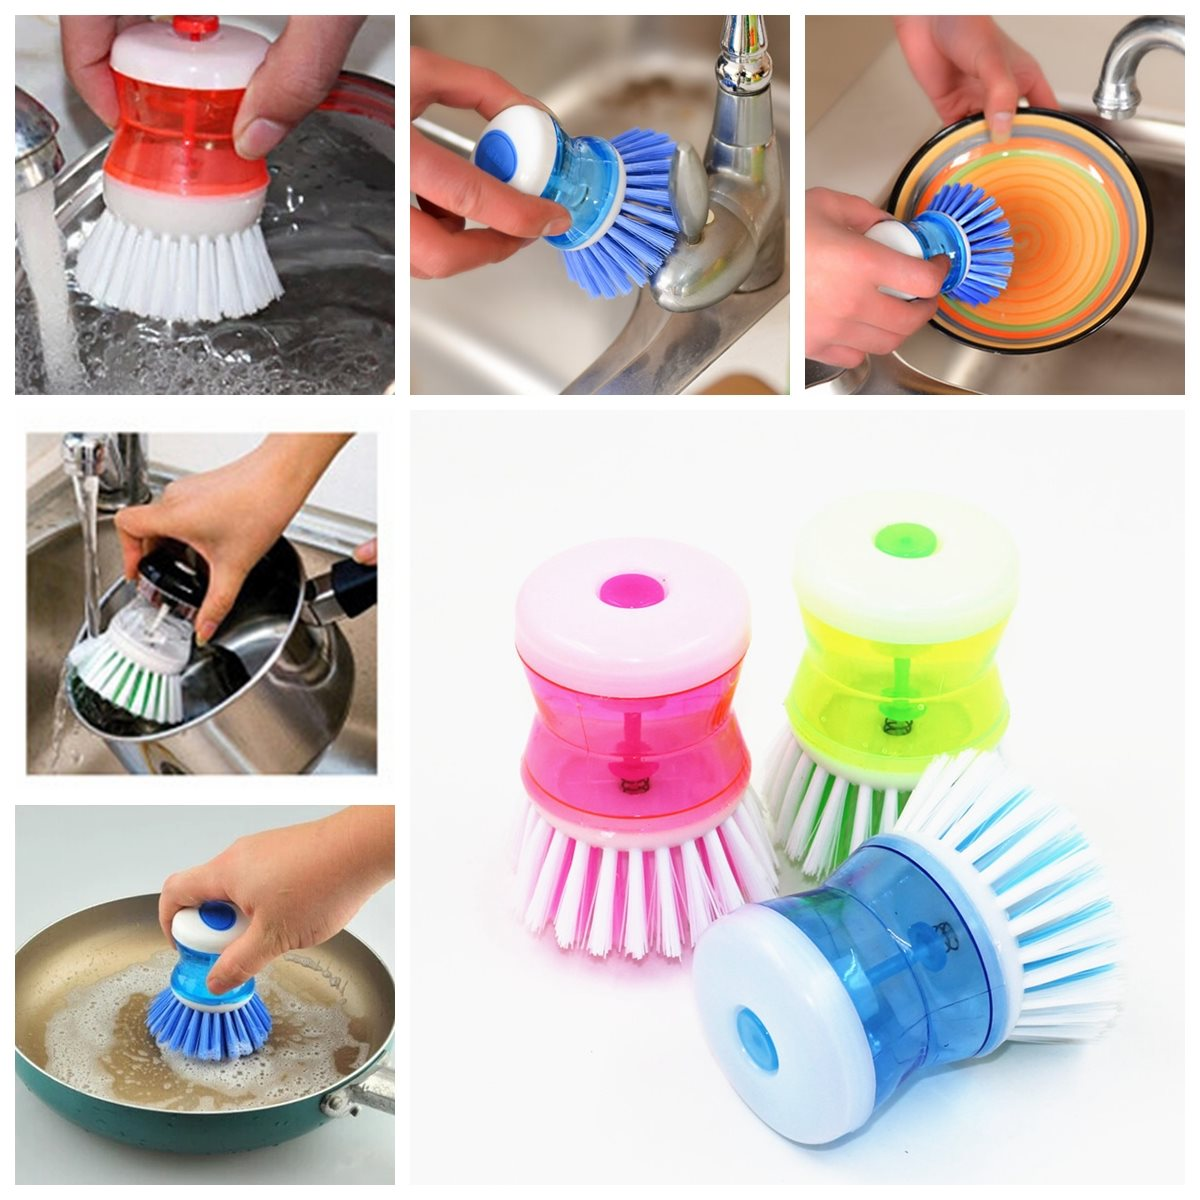 New Arrival Best Promotion Kitchen Wash Tool Pot Pan Dish Bowl For Palm Brush Scrubber Cleaning Cleaner Plastic For Cleaning(China (Mainland))